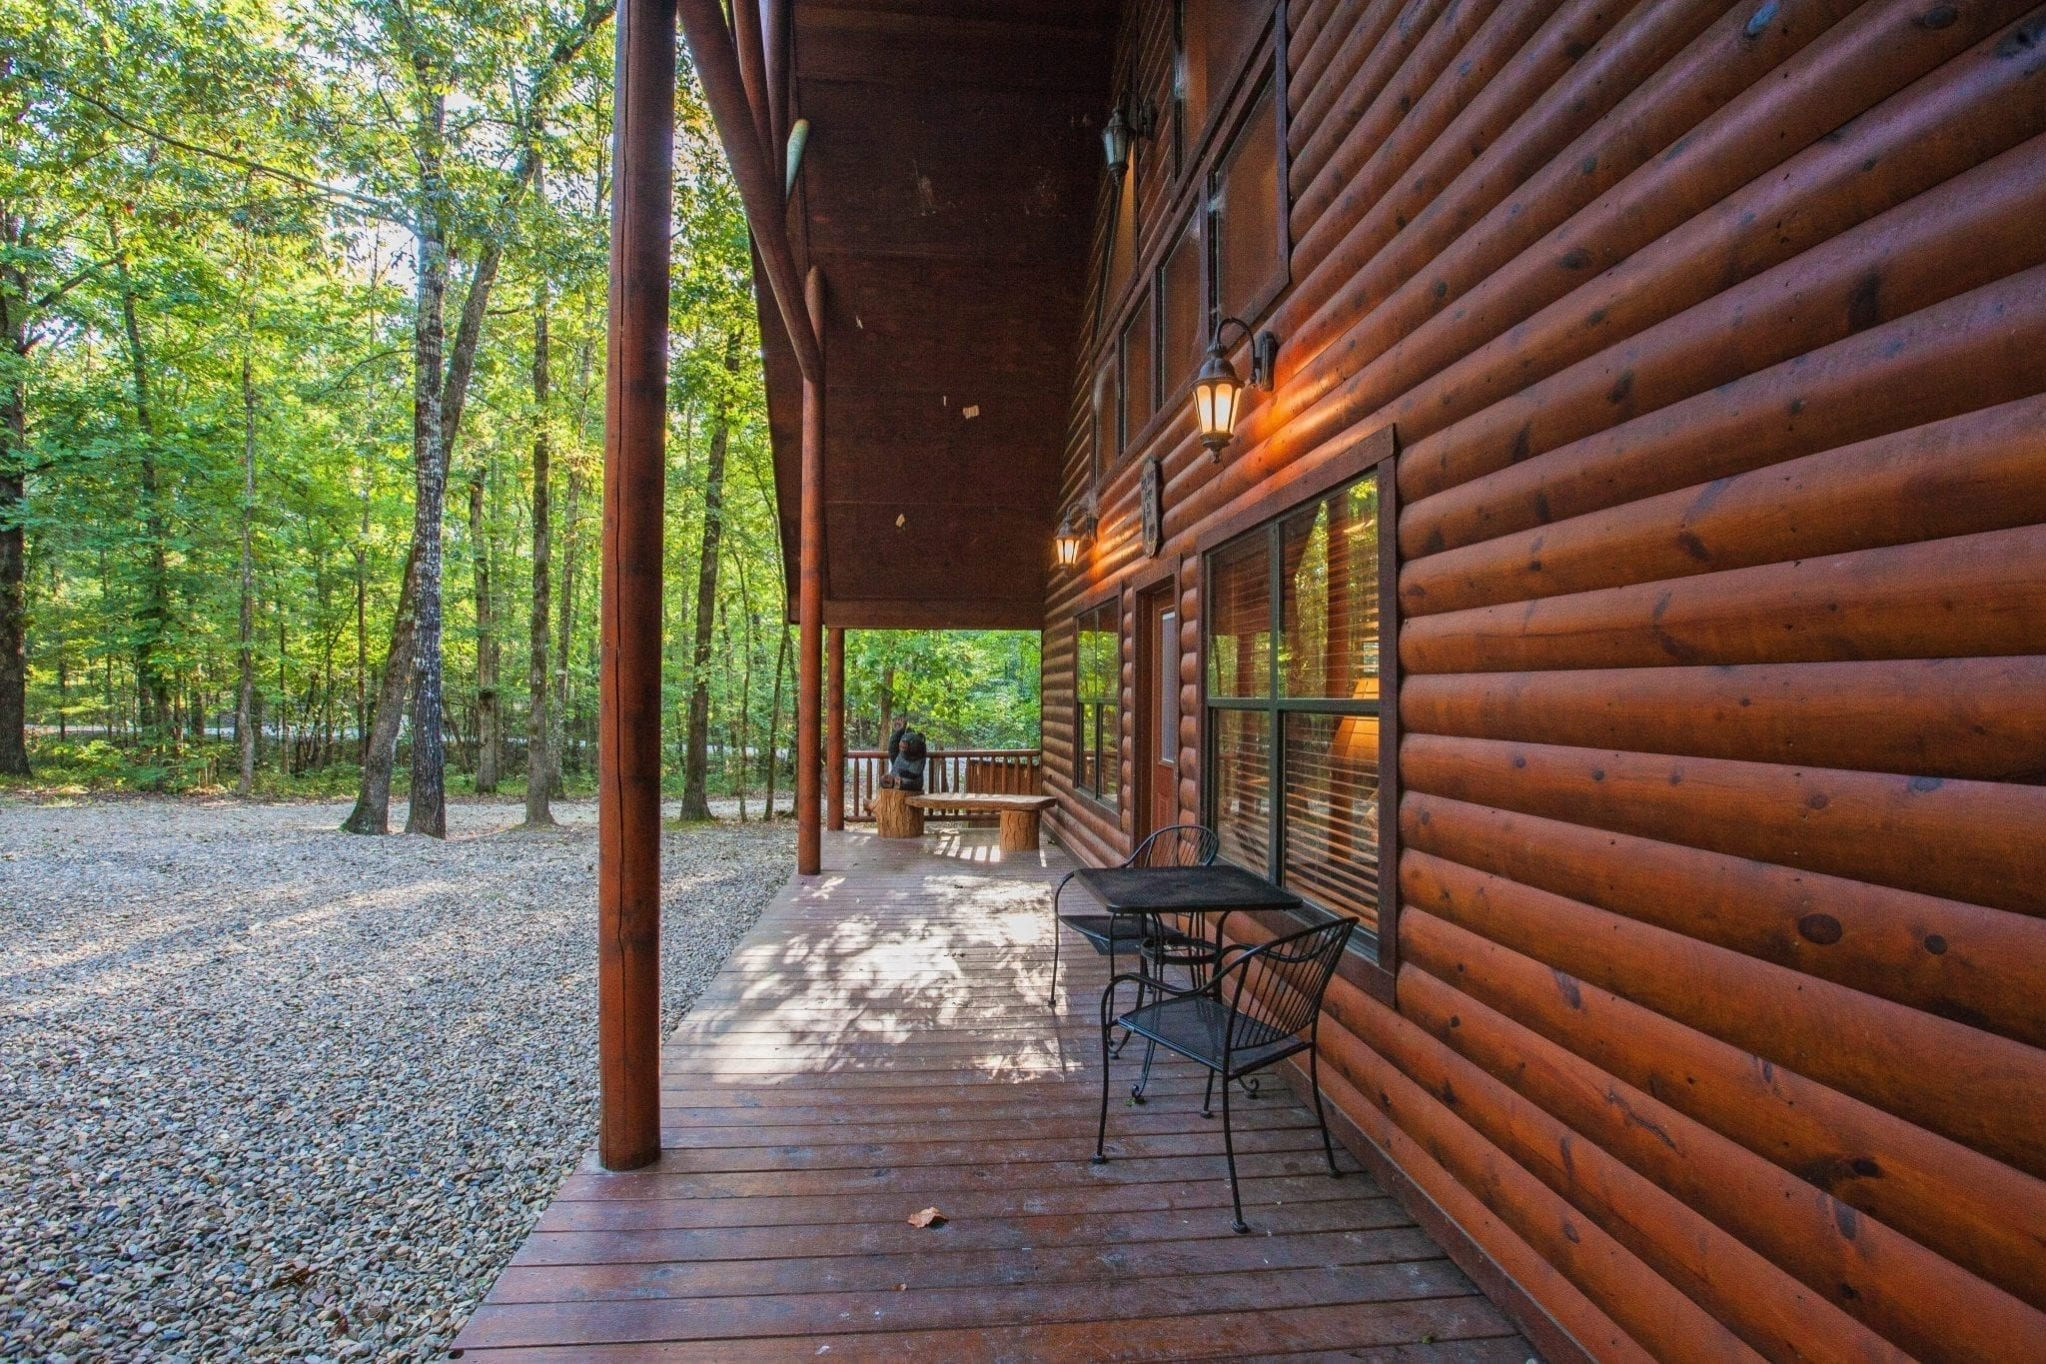 cabins ohio bow vacation river pennsylvania rentals in cab hot hockg ohiopyle hills broken log hocking cabin tubs